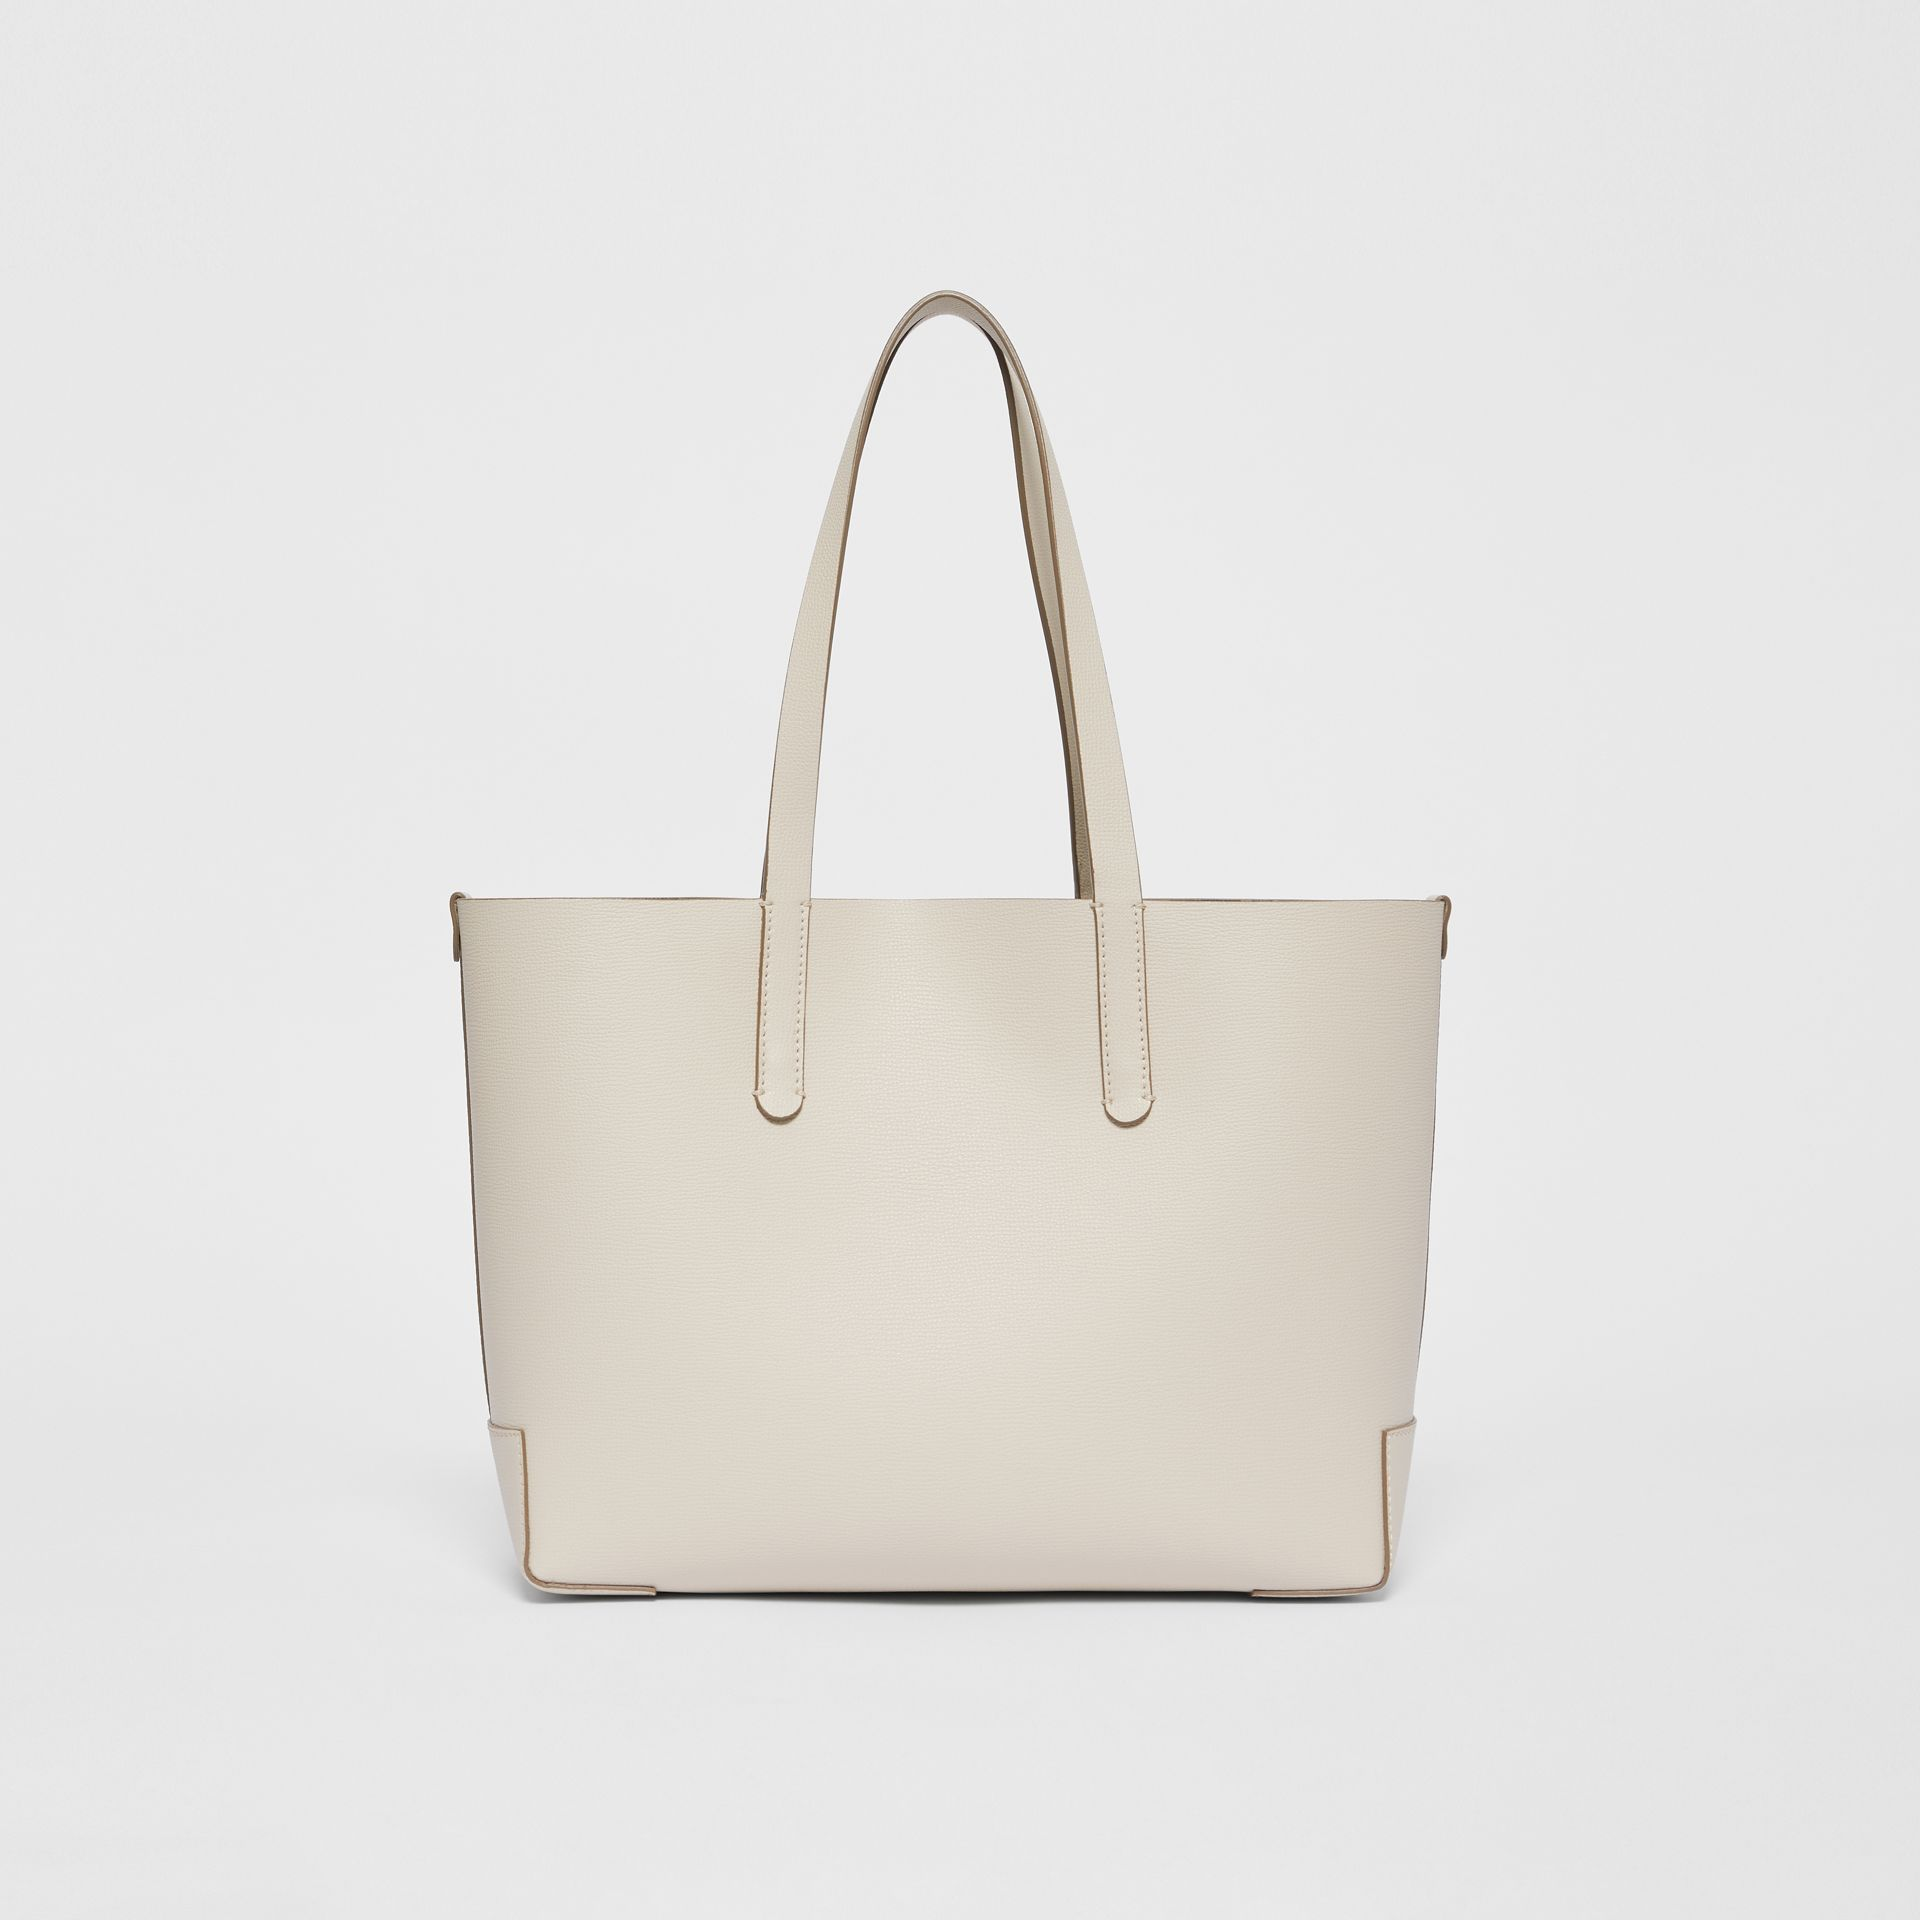 Embossed Monogram Motif Leather Tote in Limestone - Women | Burberry - gallery image 7